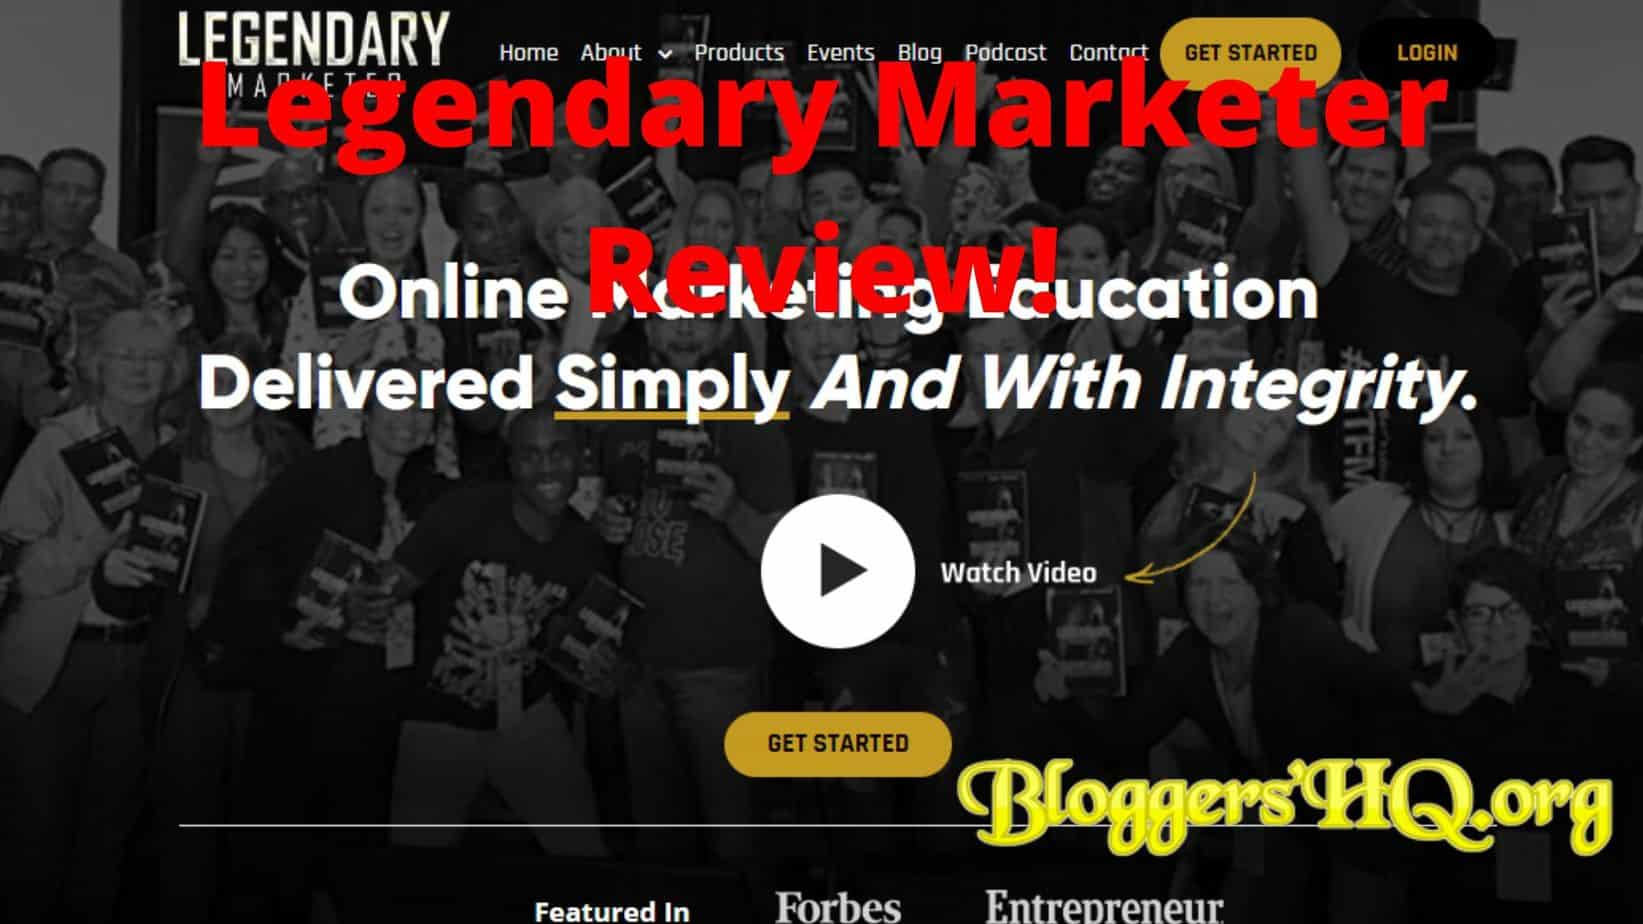 Hot Deals Legendary Marketer 2020